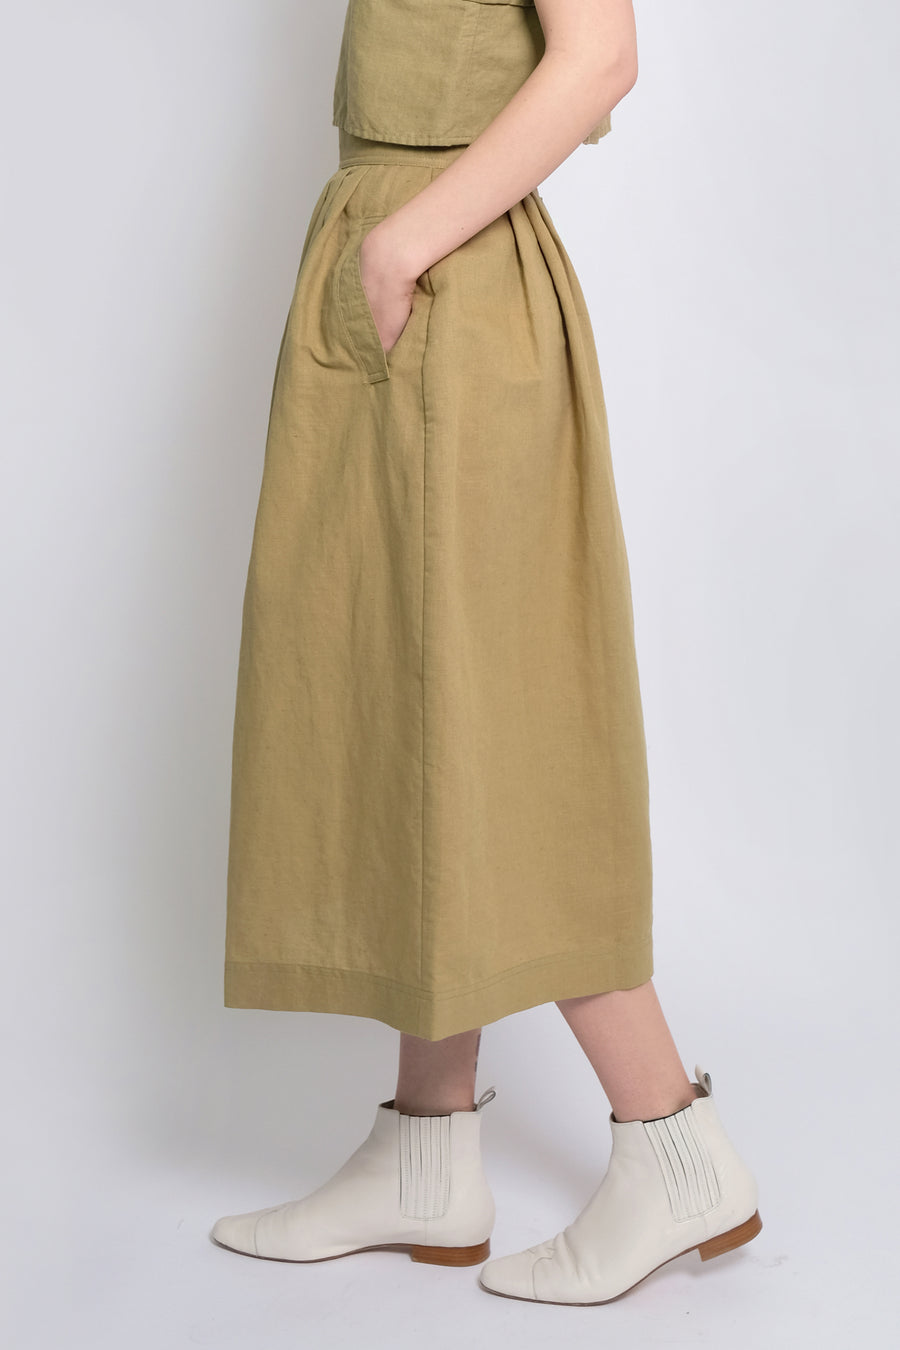 Moss Ellis Pleated Skirt